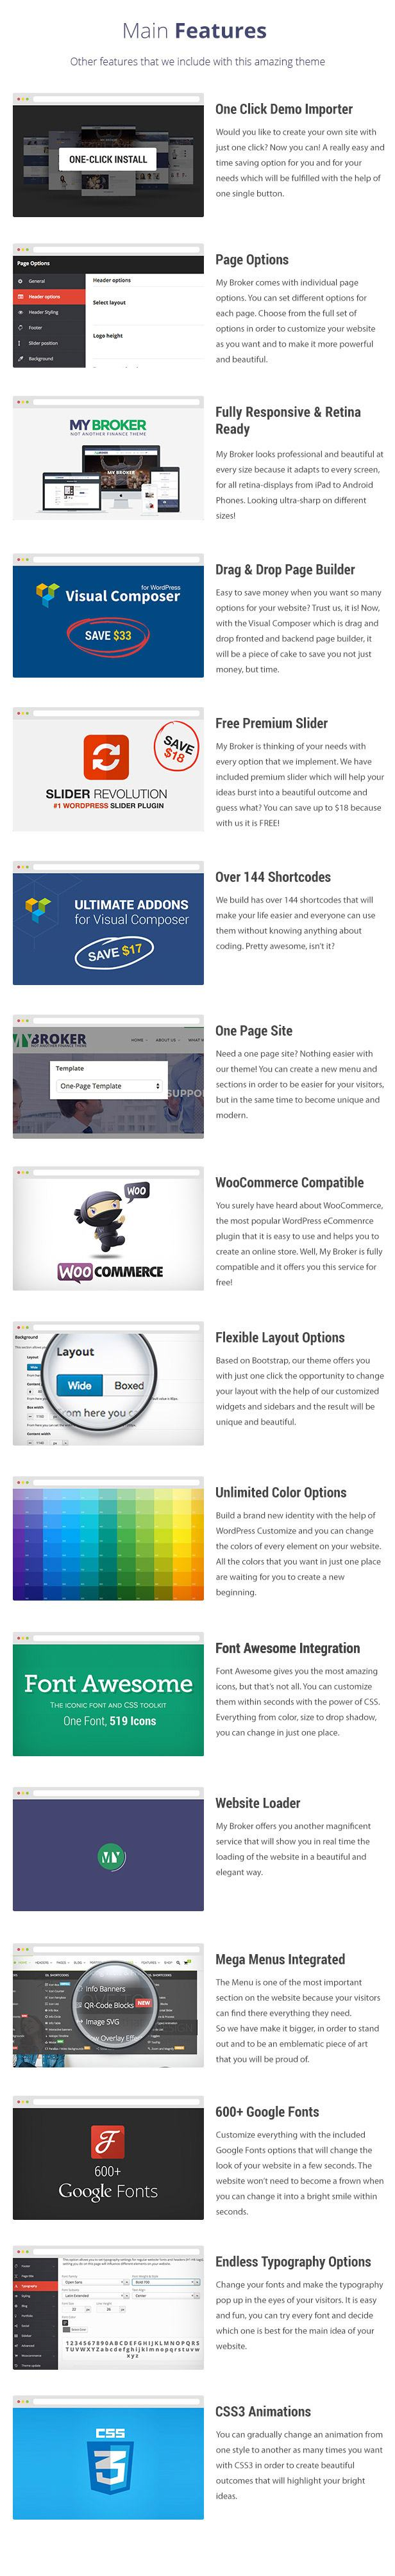 My Broker - Consulting Business and Finance WordPress Theme - 10